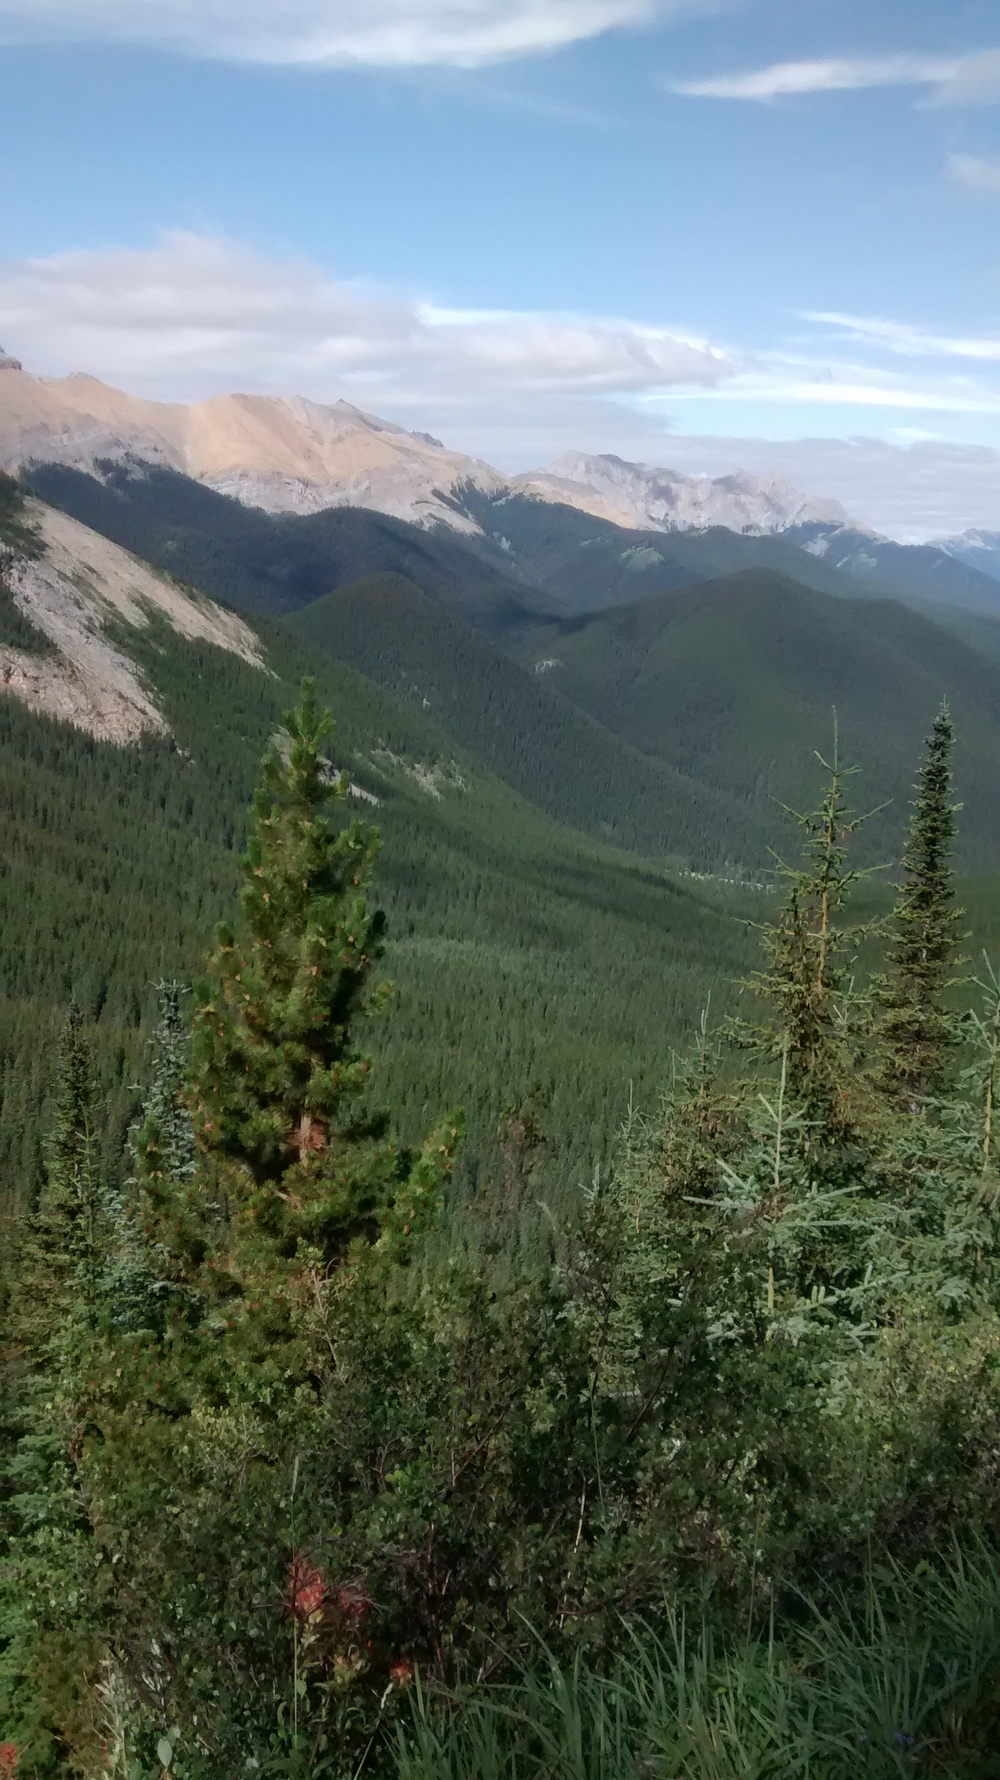 View from Sulphur Skyline, Jasper National Park